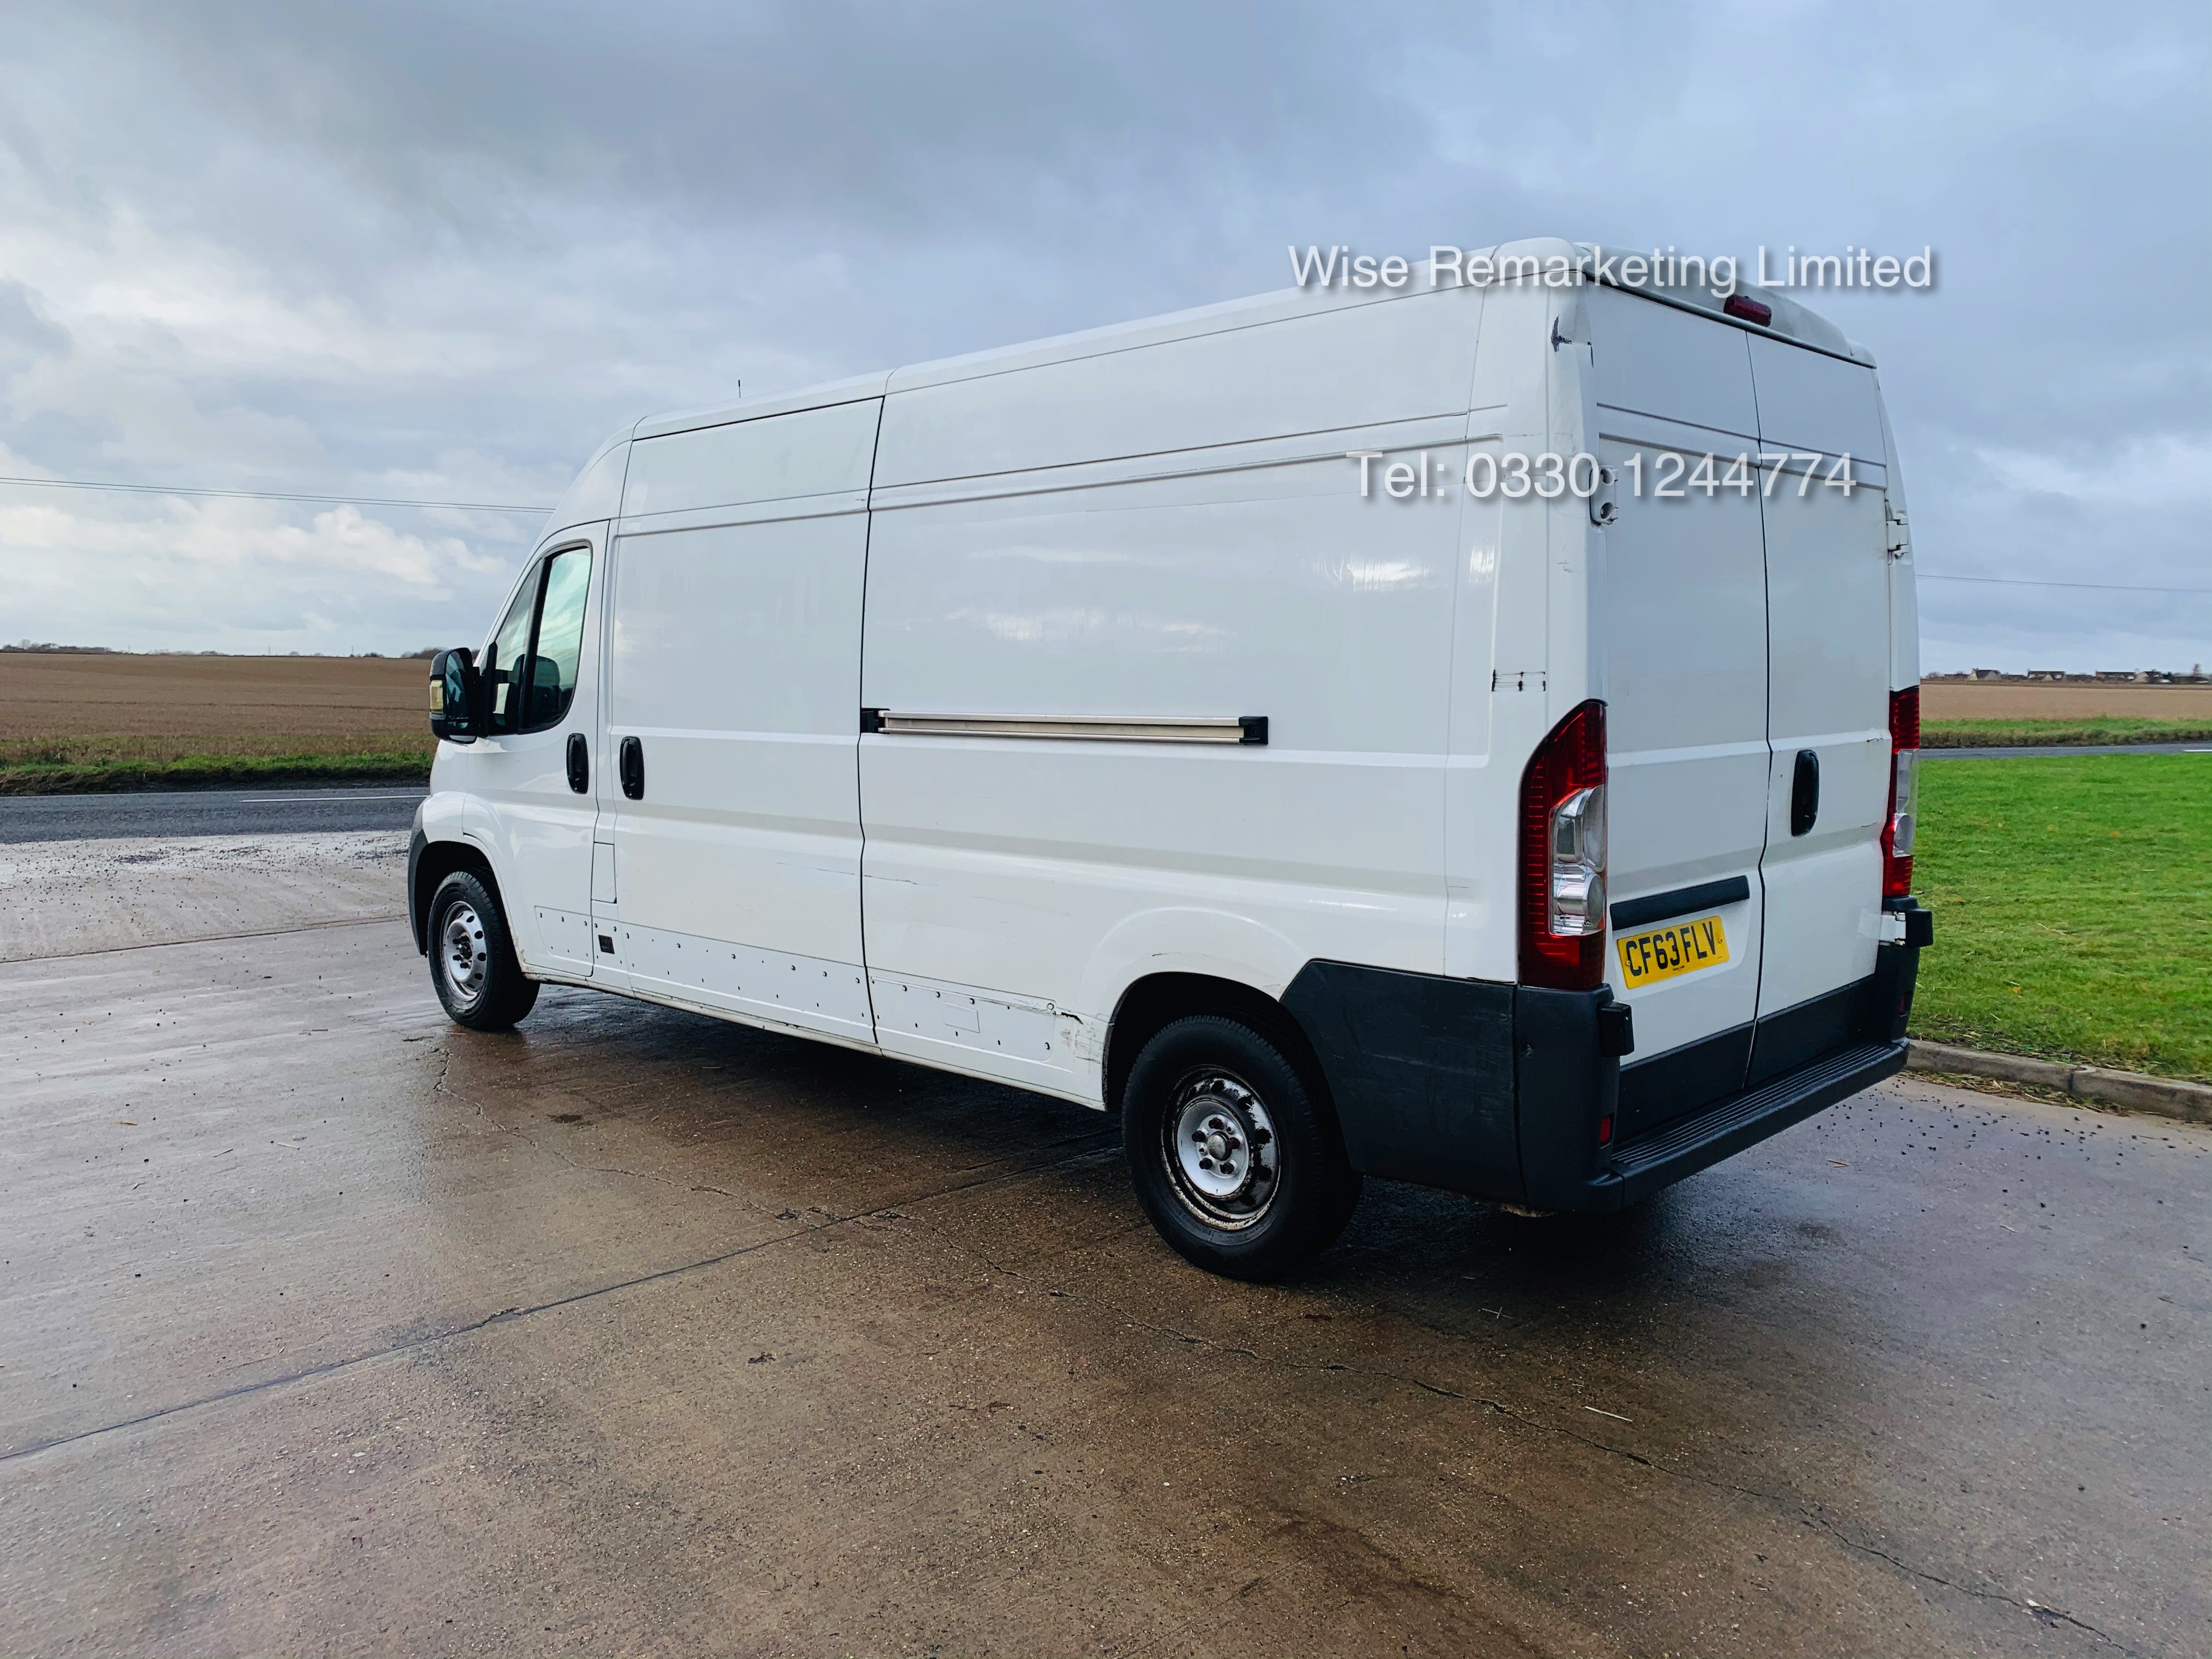 Peugeot Boxer 335 2.2 HDi (L3H2) 2014 Model - 1 Keeper From New - Long Wheel Base - Image 5 of 17